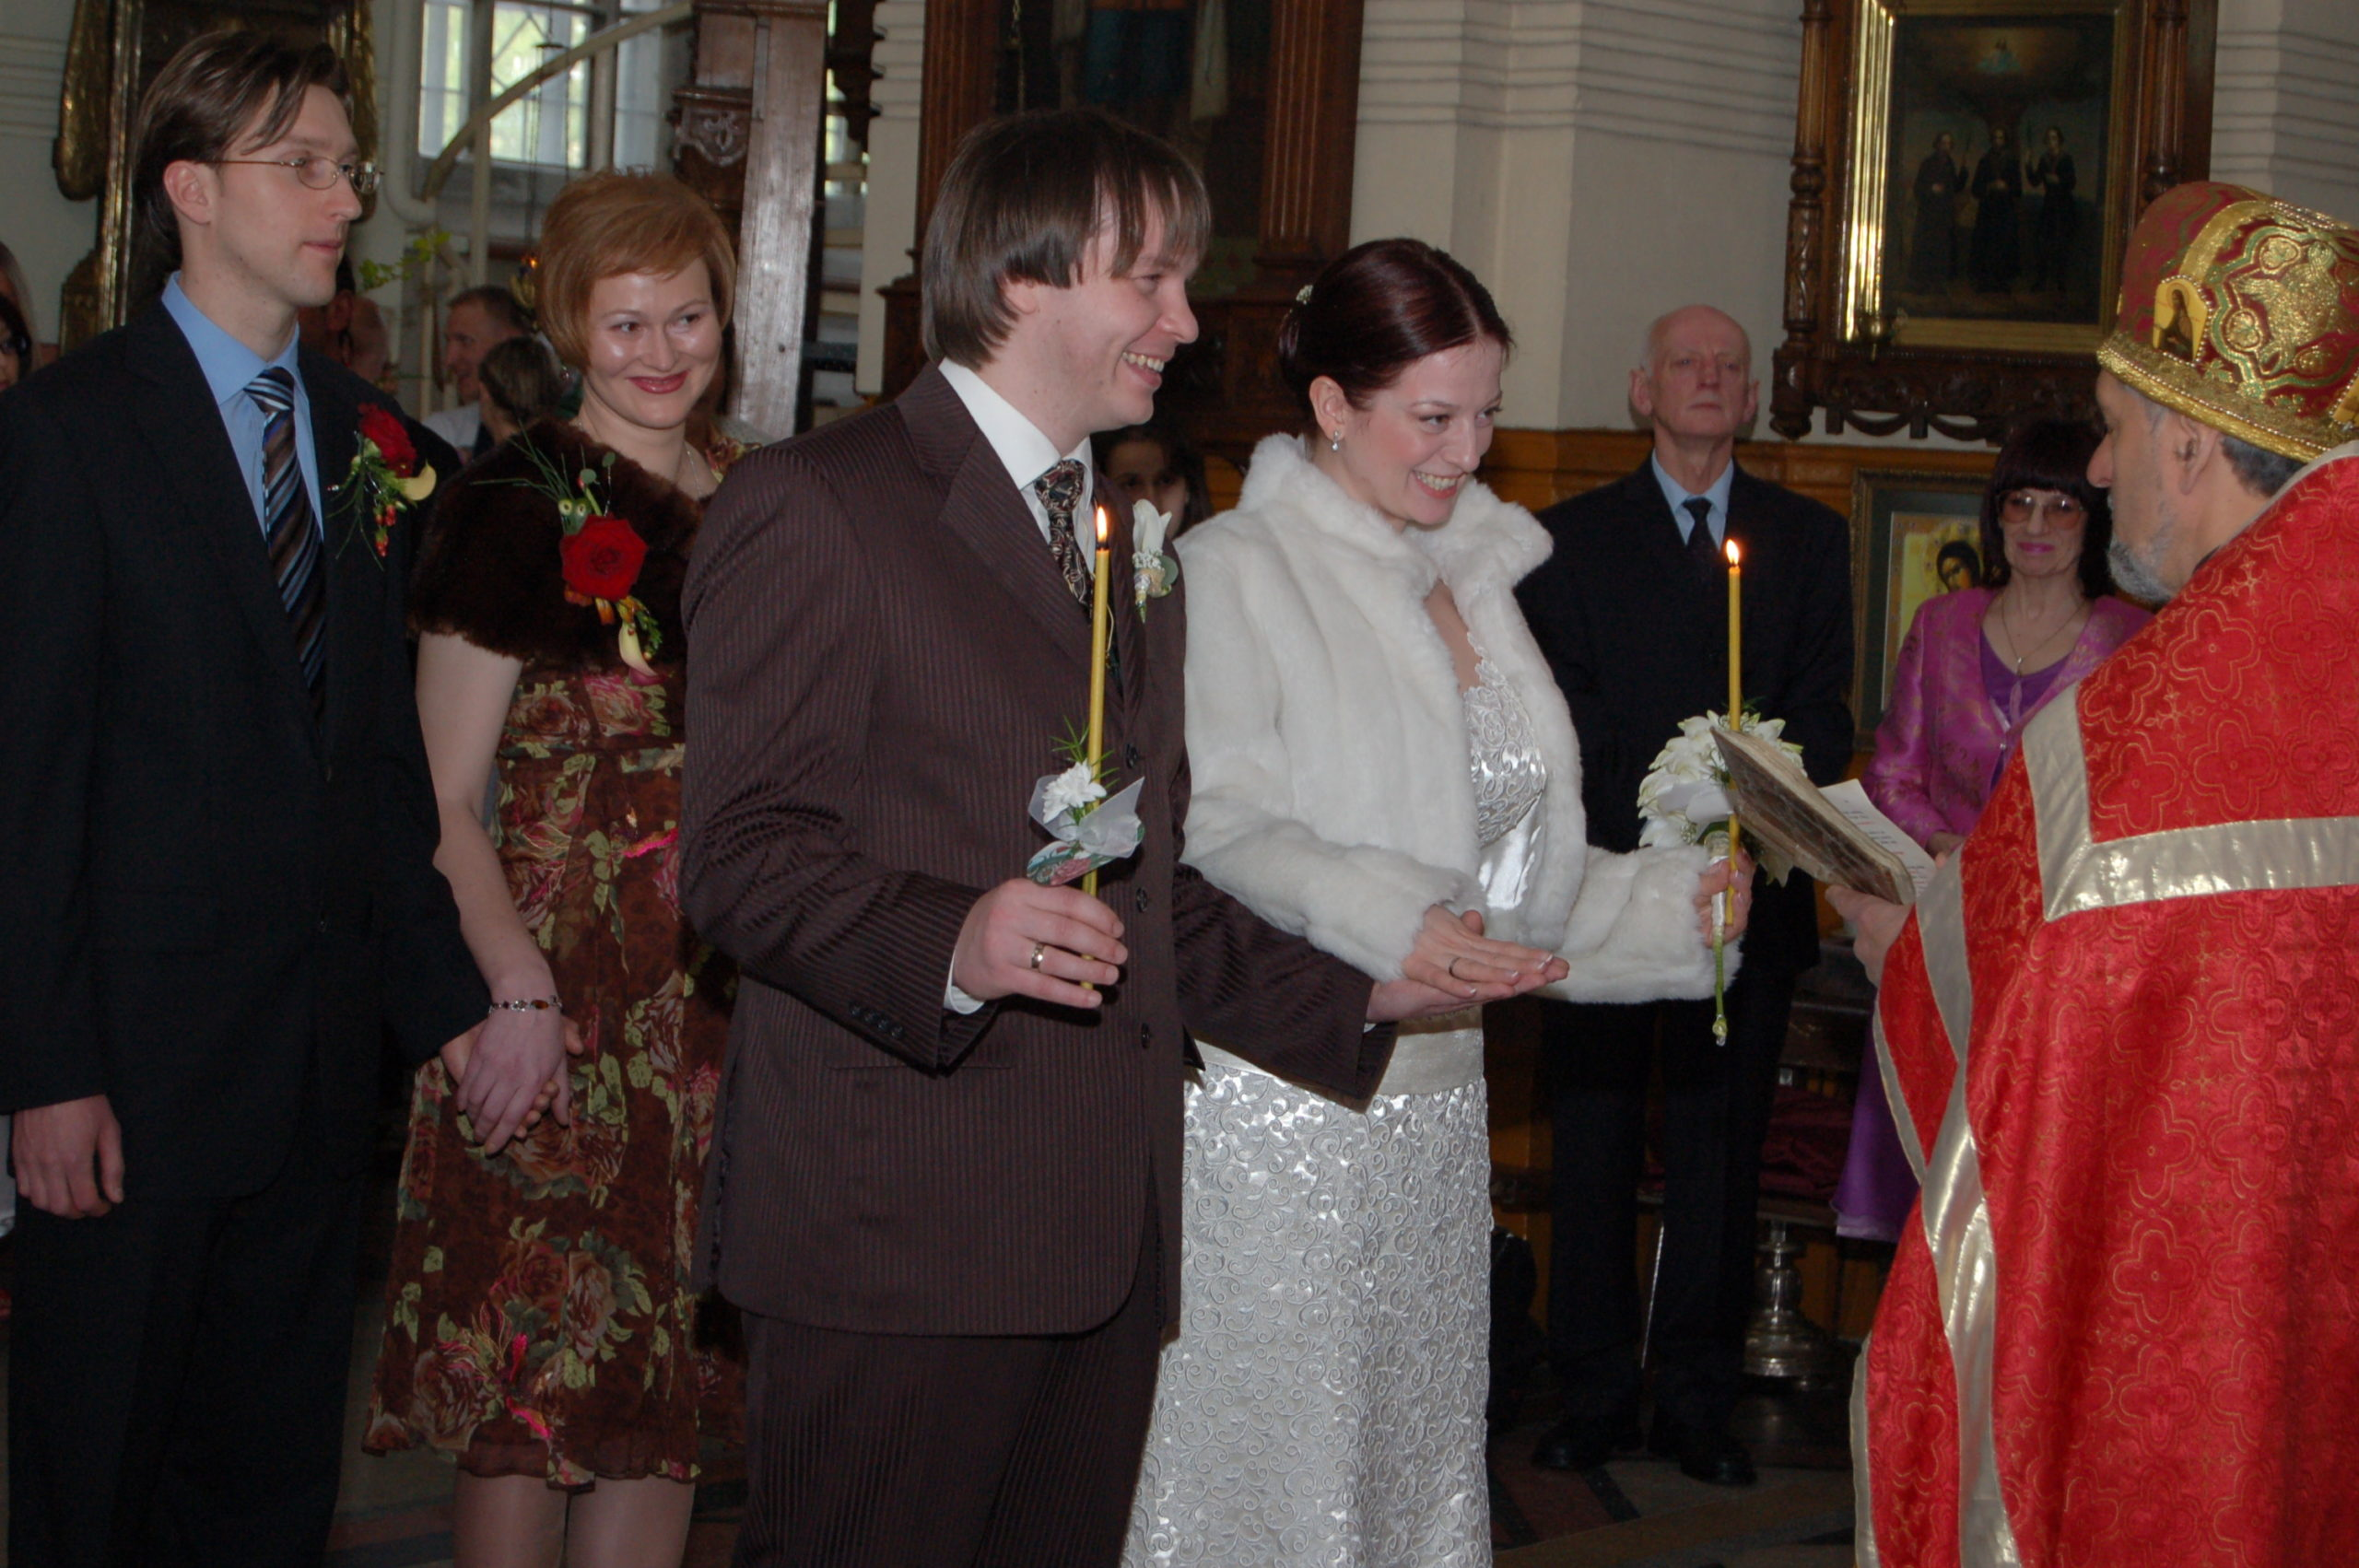 The priest faces the bride and the groom and reads, probably from the scripture